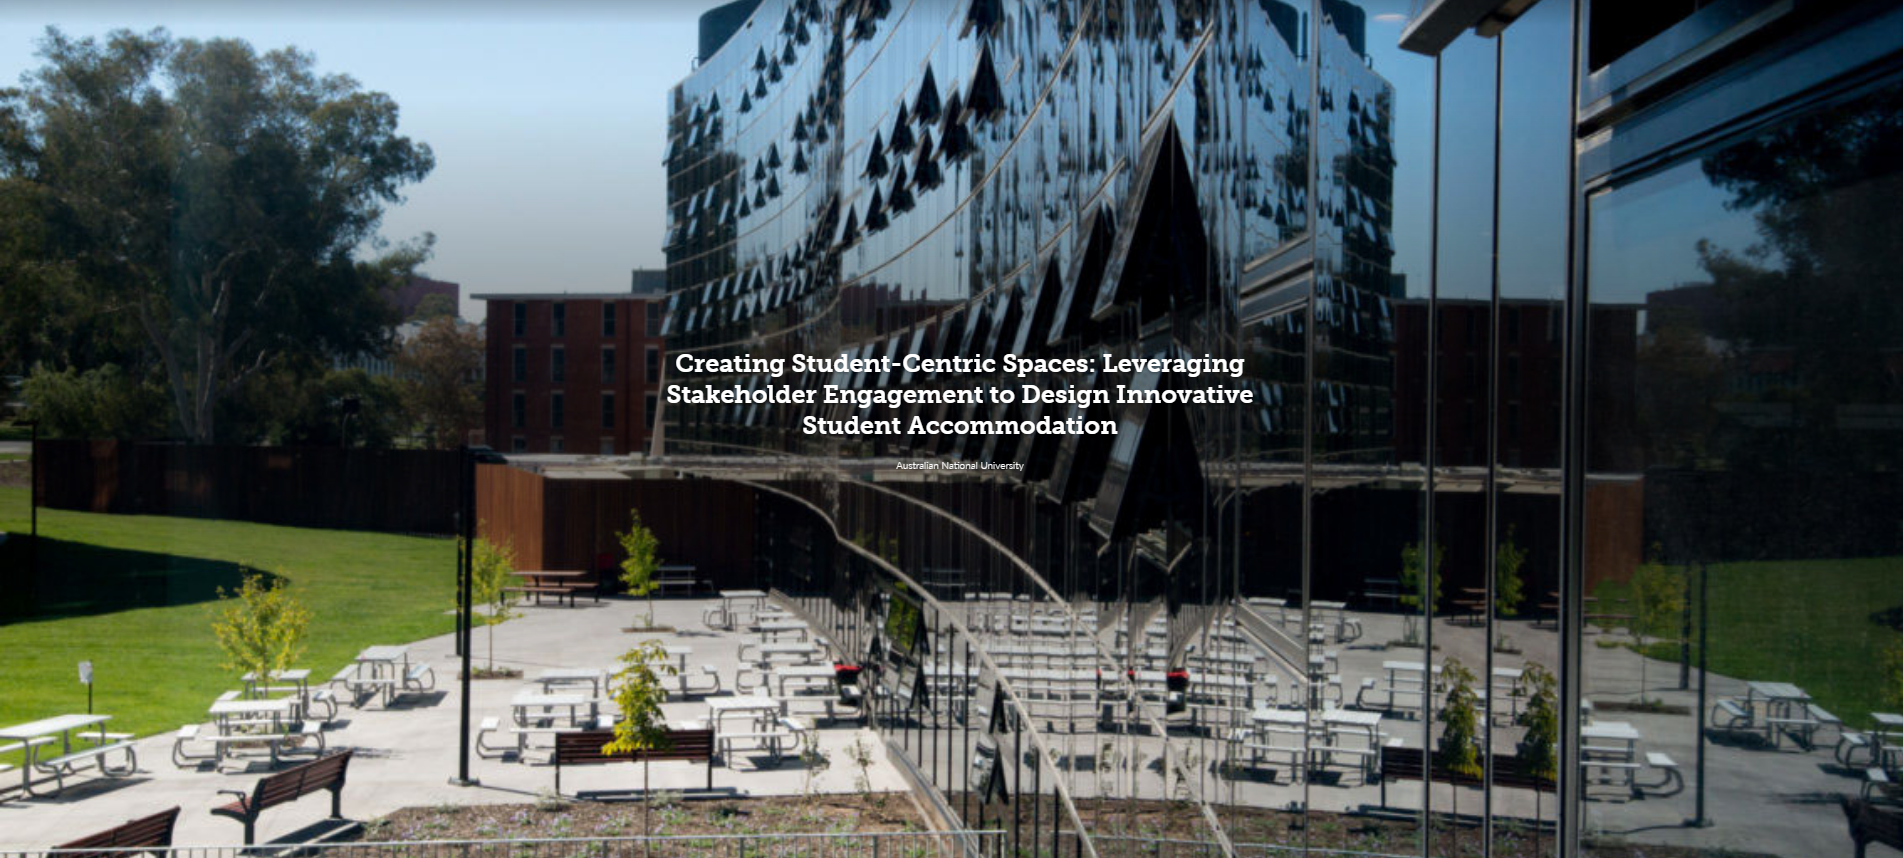 Creating Student-Centric Spaces: Leveraging Stakeholder Engagement Engagement to Design Innovative Student Accommodation